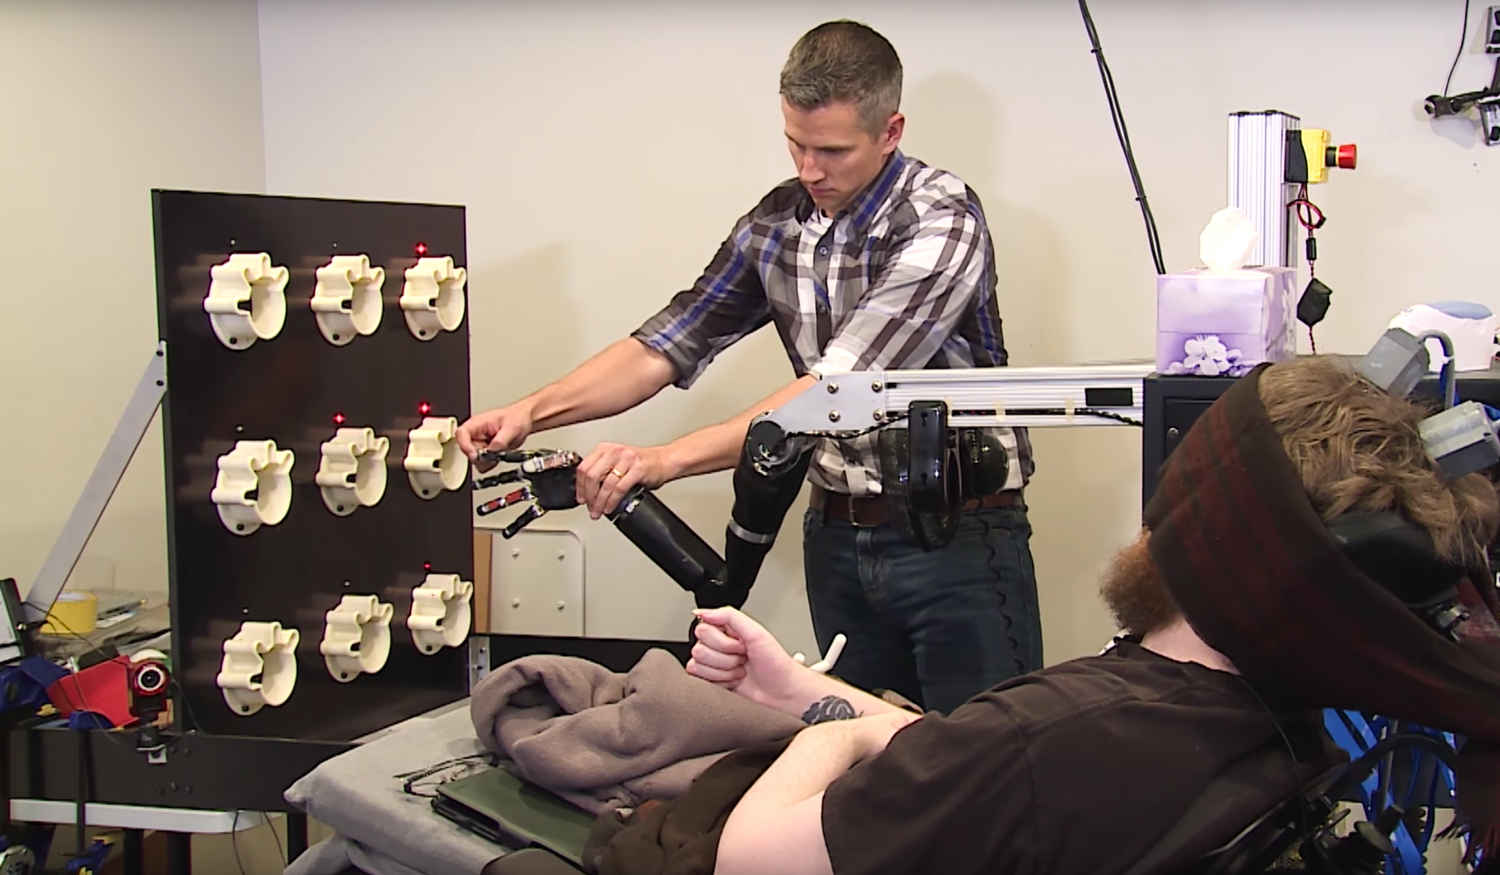 Nathan Copeland, seated, is tested on his sense of touch through a robotic arm.